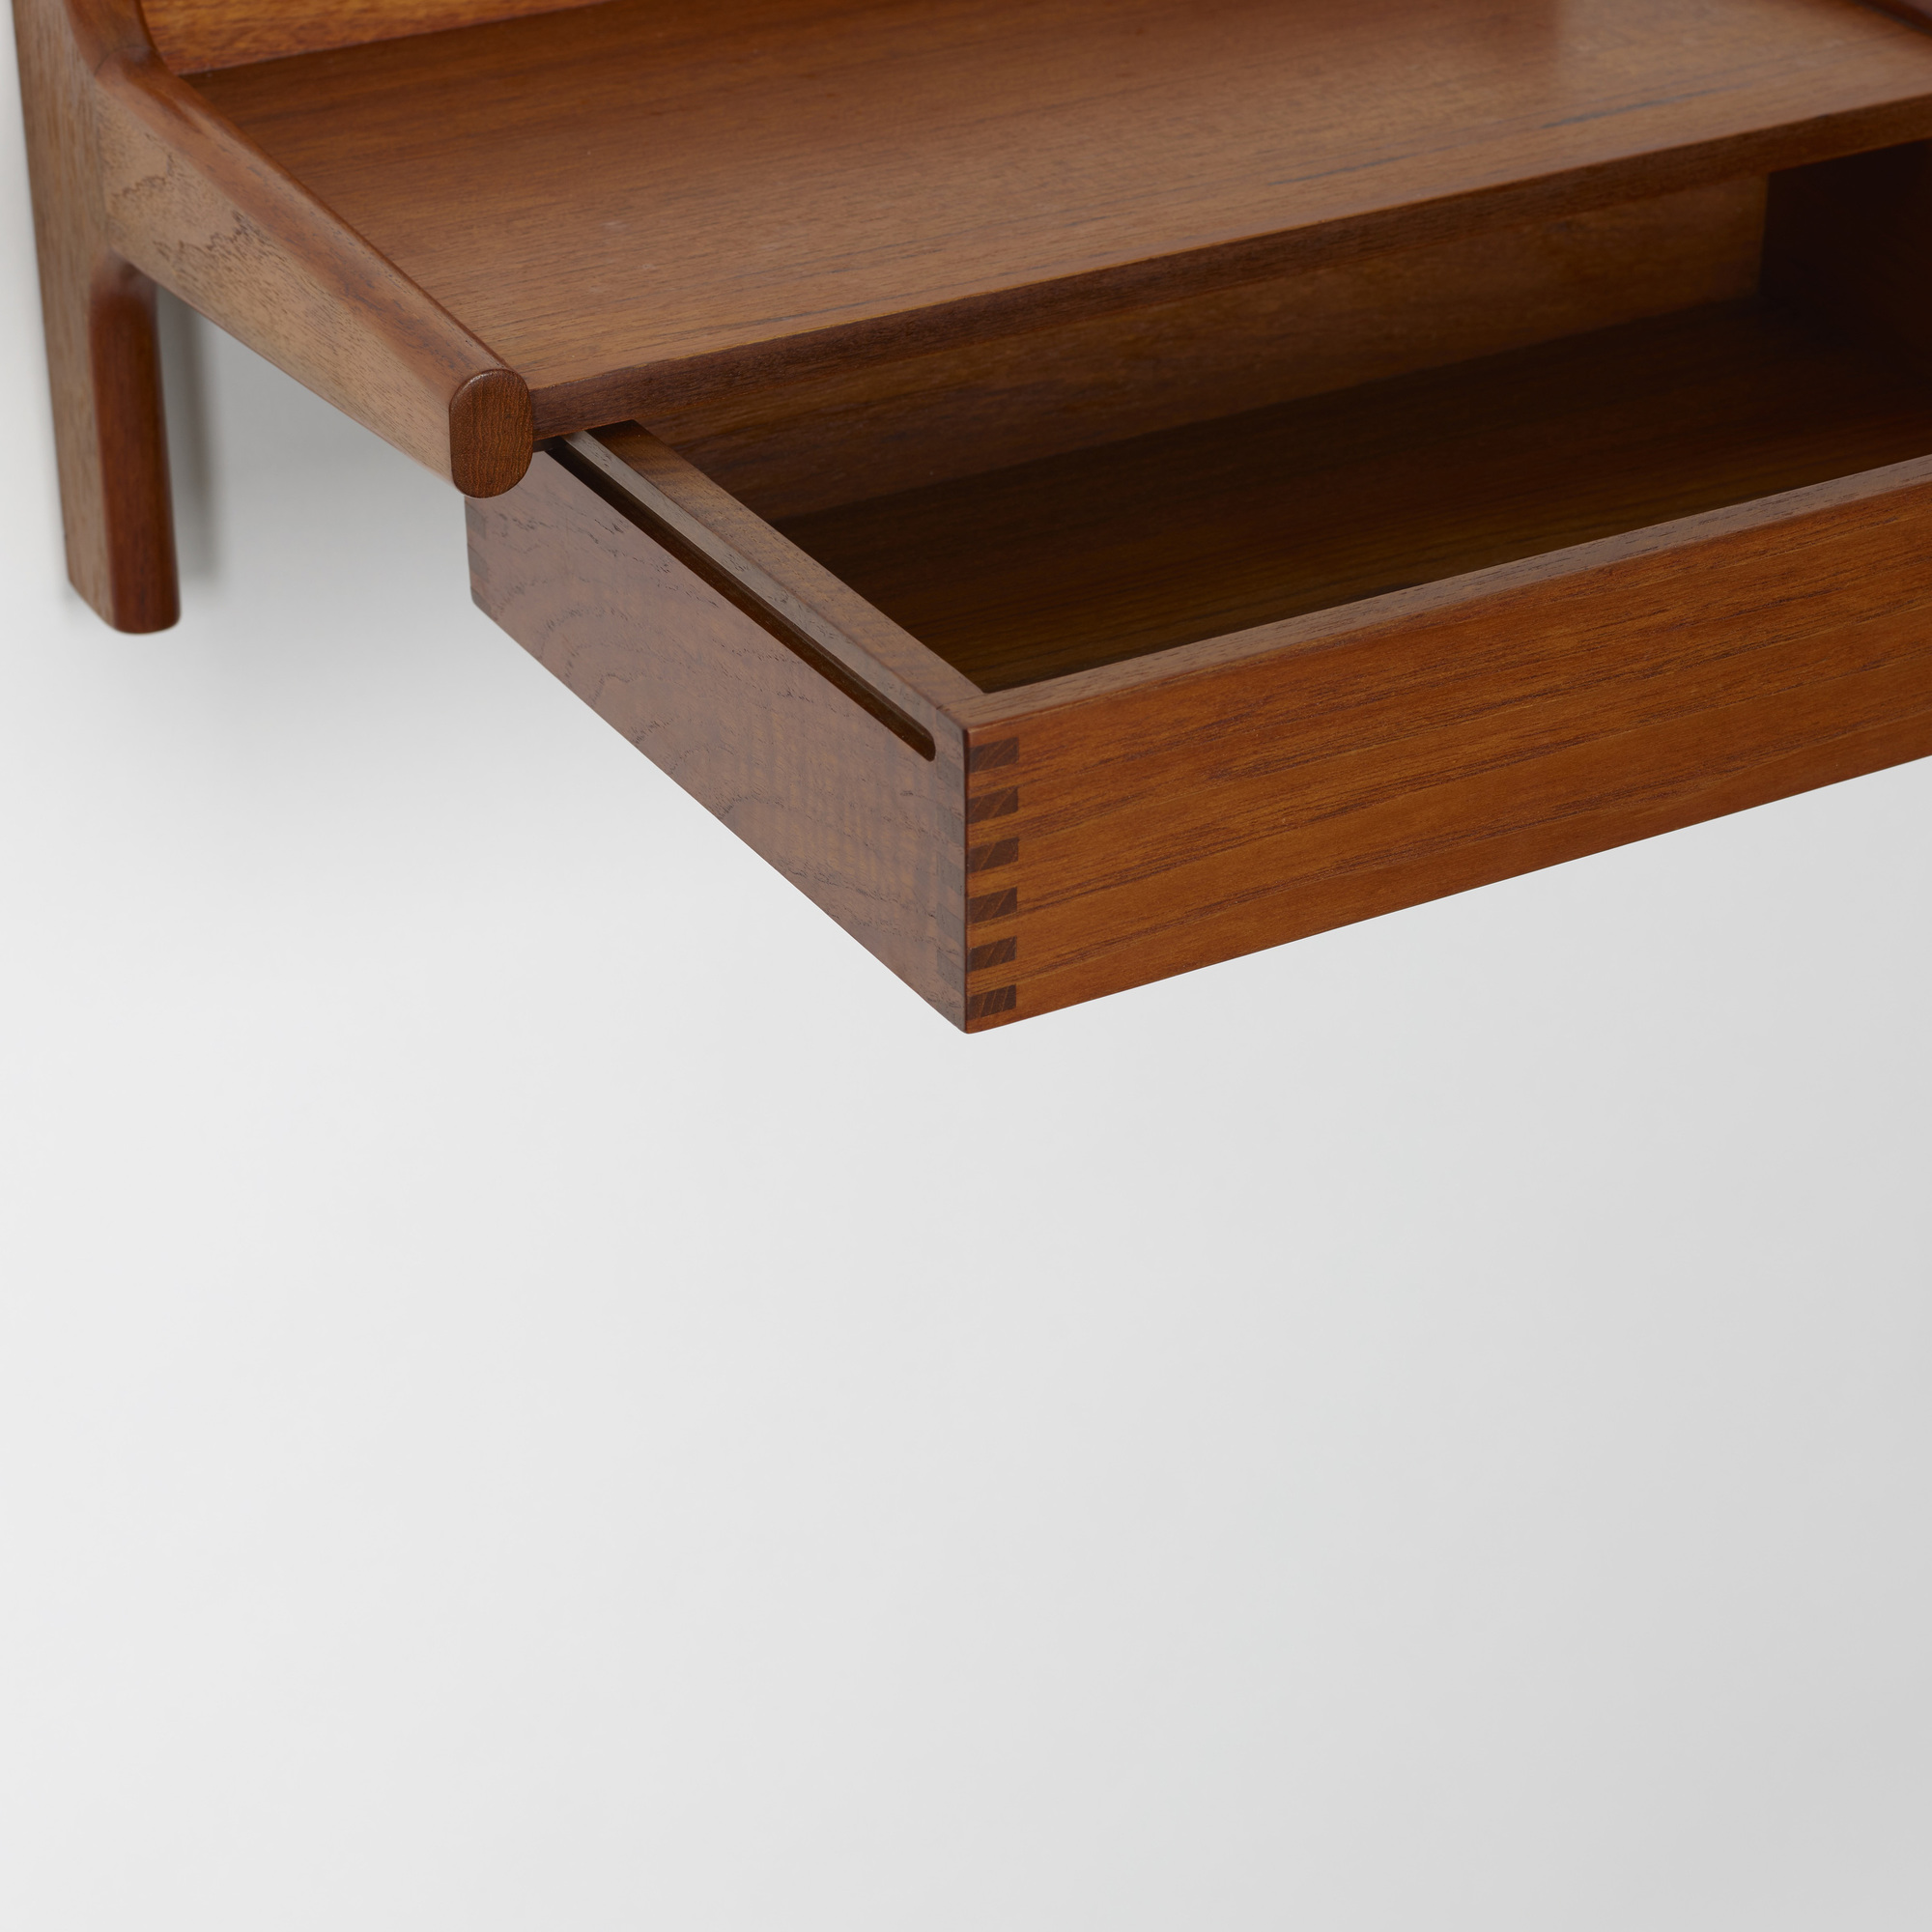 222: Børge Mogensen / wall-mounted shelves, pair (3 of 3)